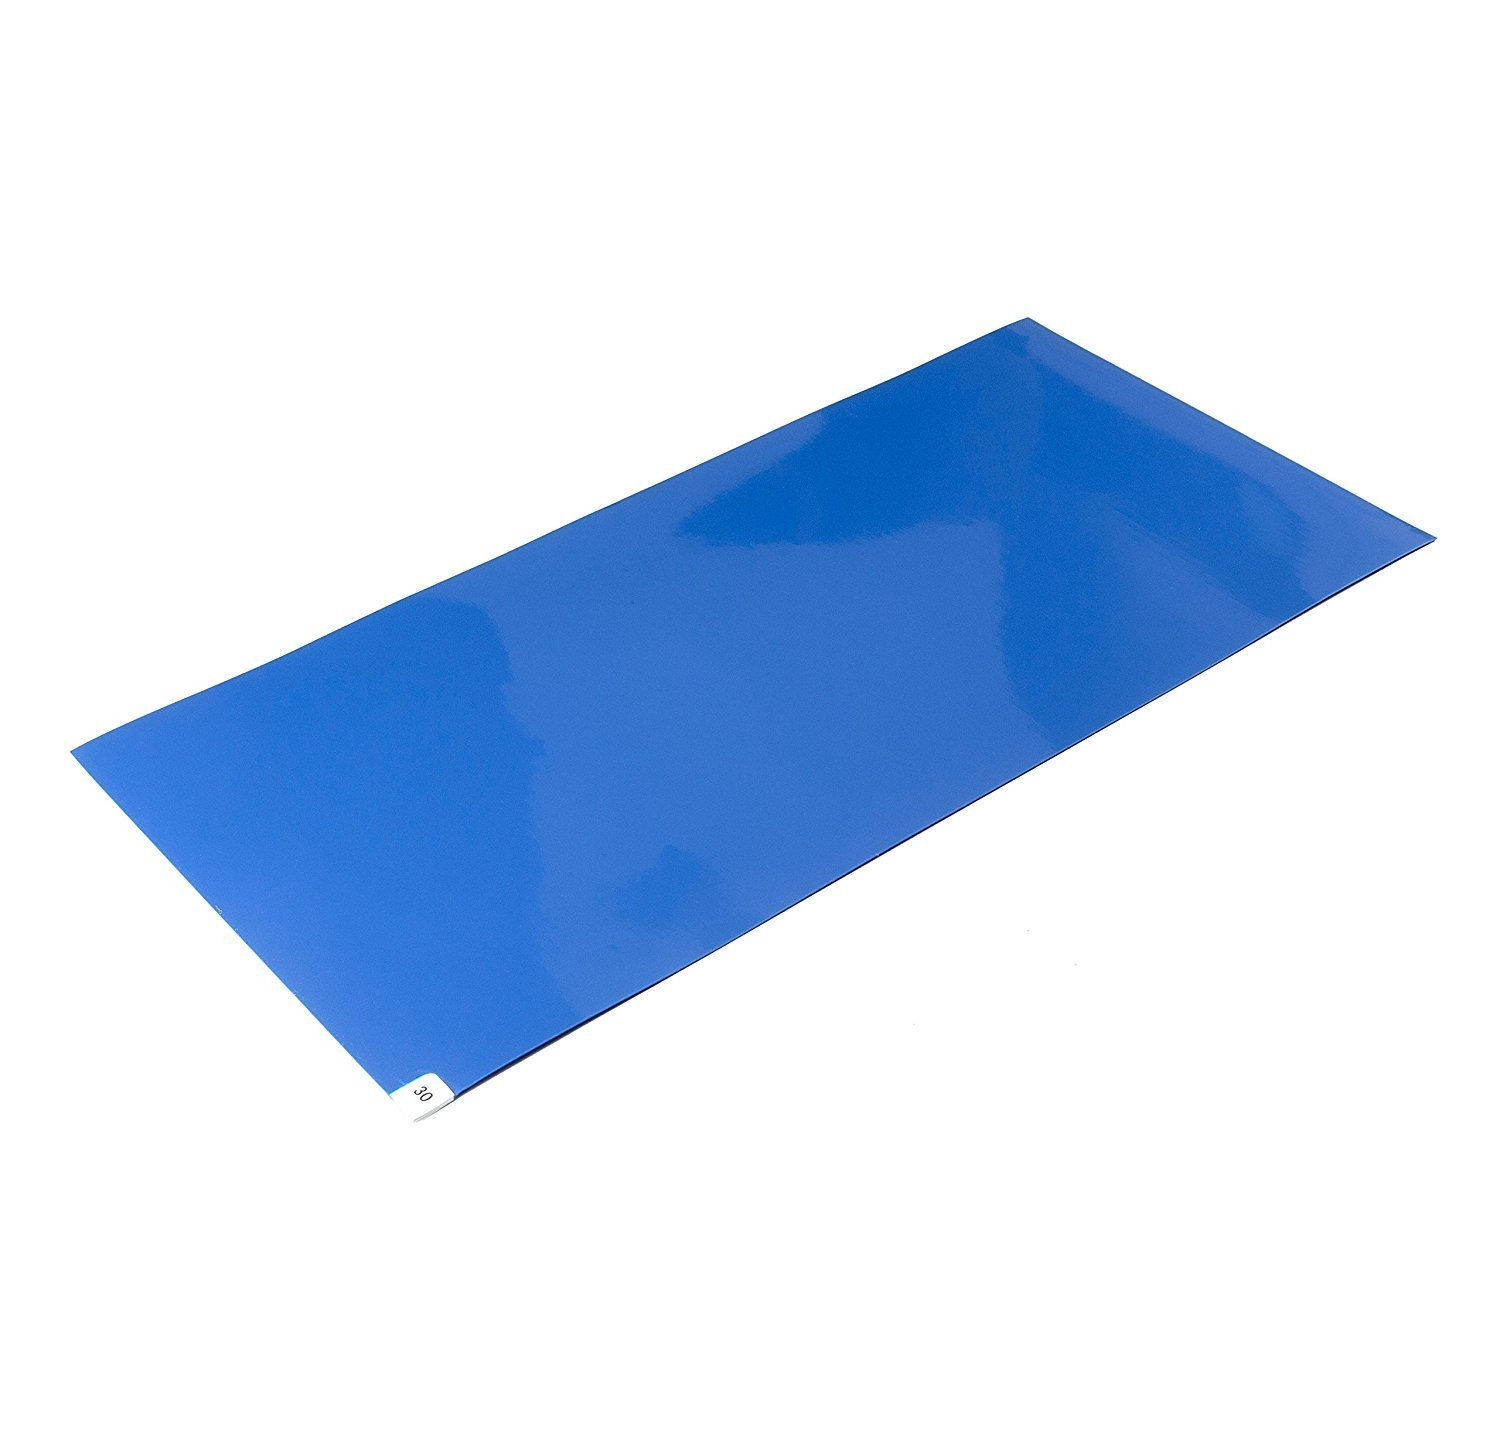 CleanPro Blue Adhesive Sticky/Tacky Mats, 18'' x 45'' (Case of 4, 30 Sheets/Mat)